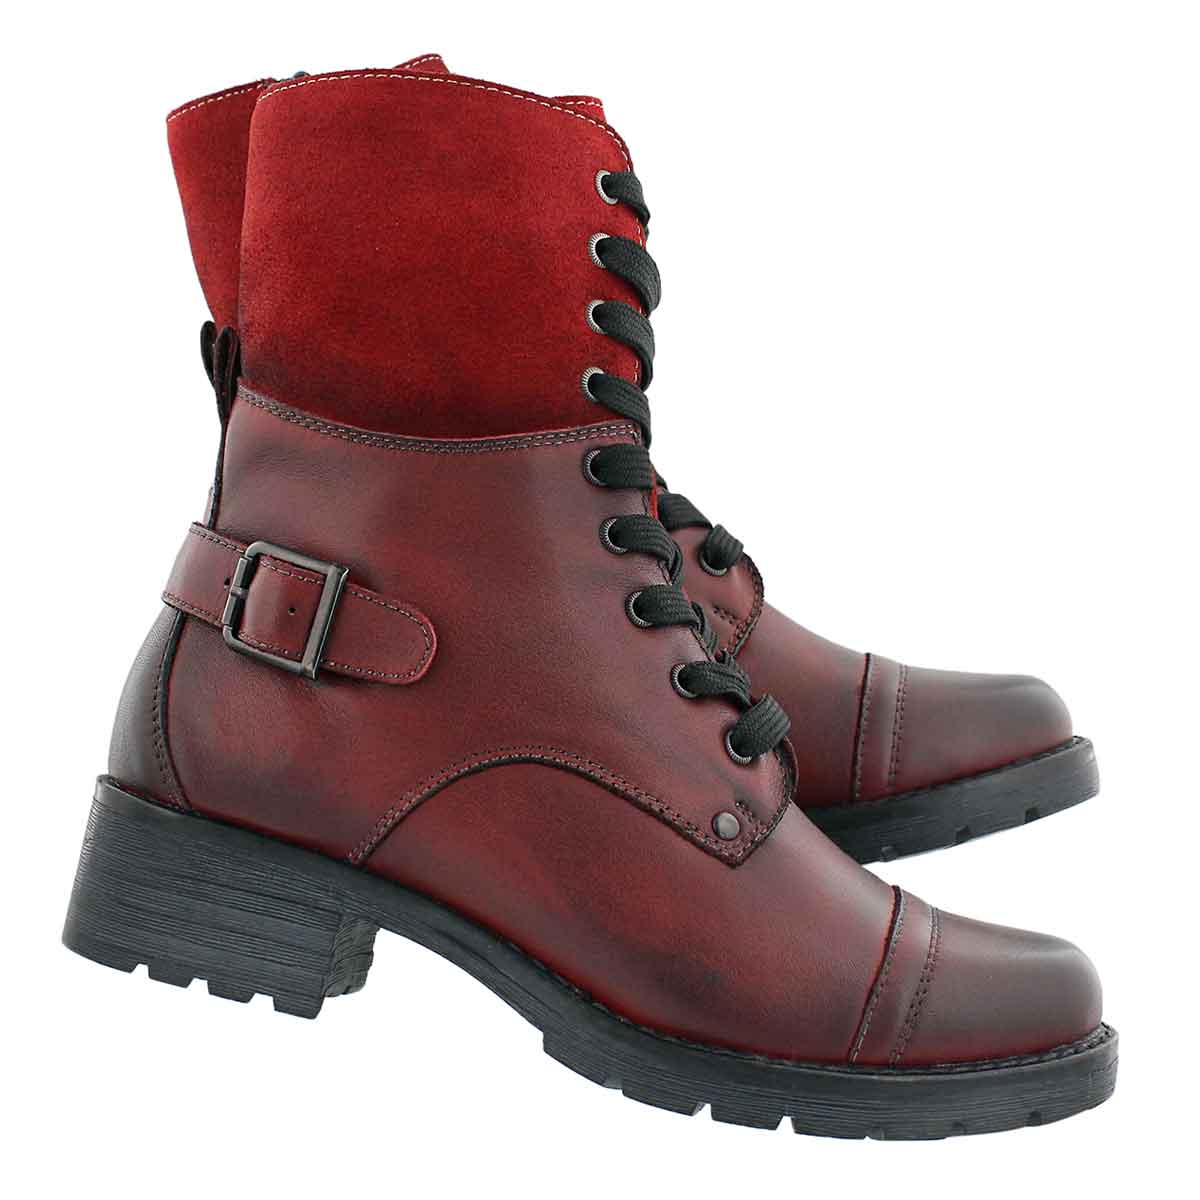 Lds Deedee 2 red combat boot